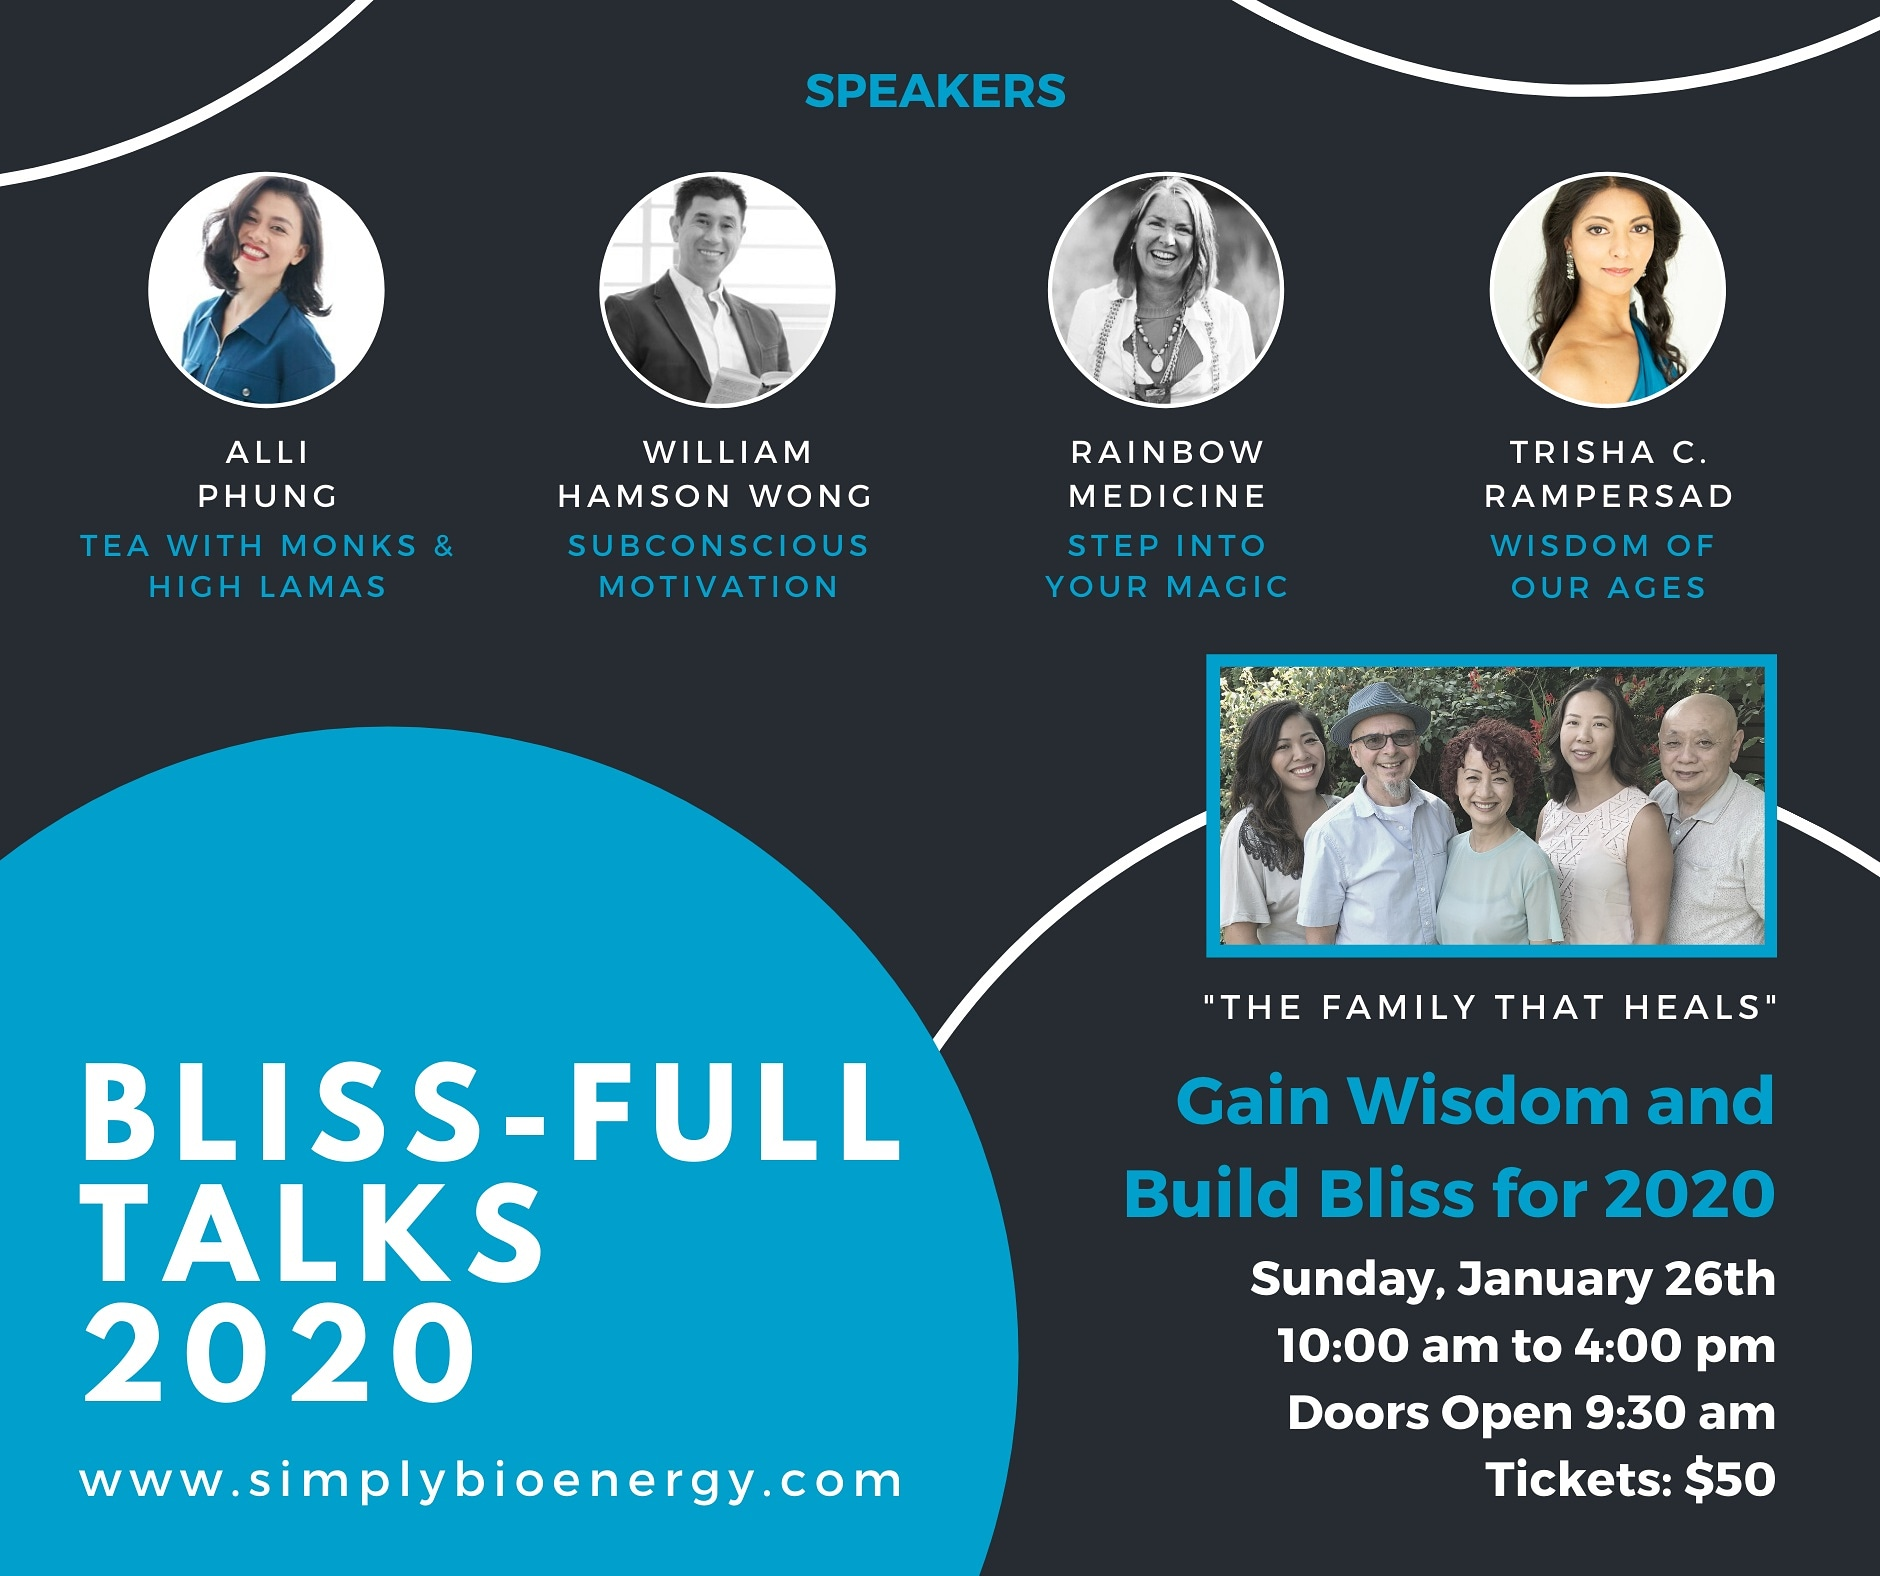 Bliss-Full Talks 2029